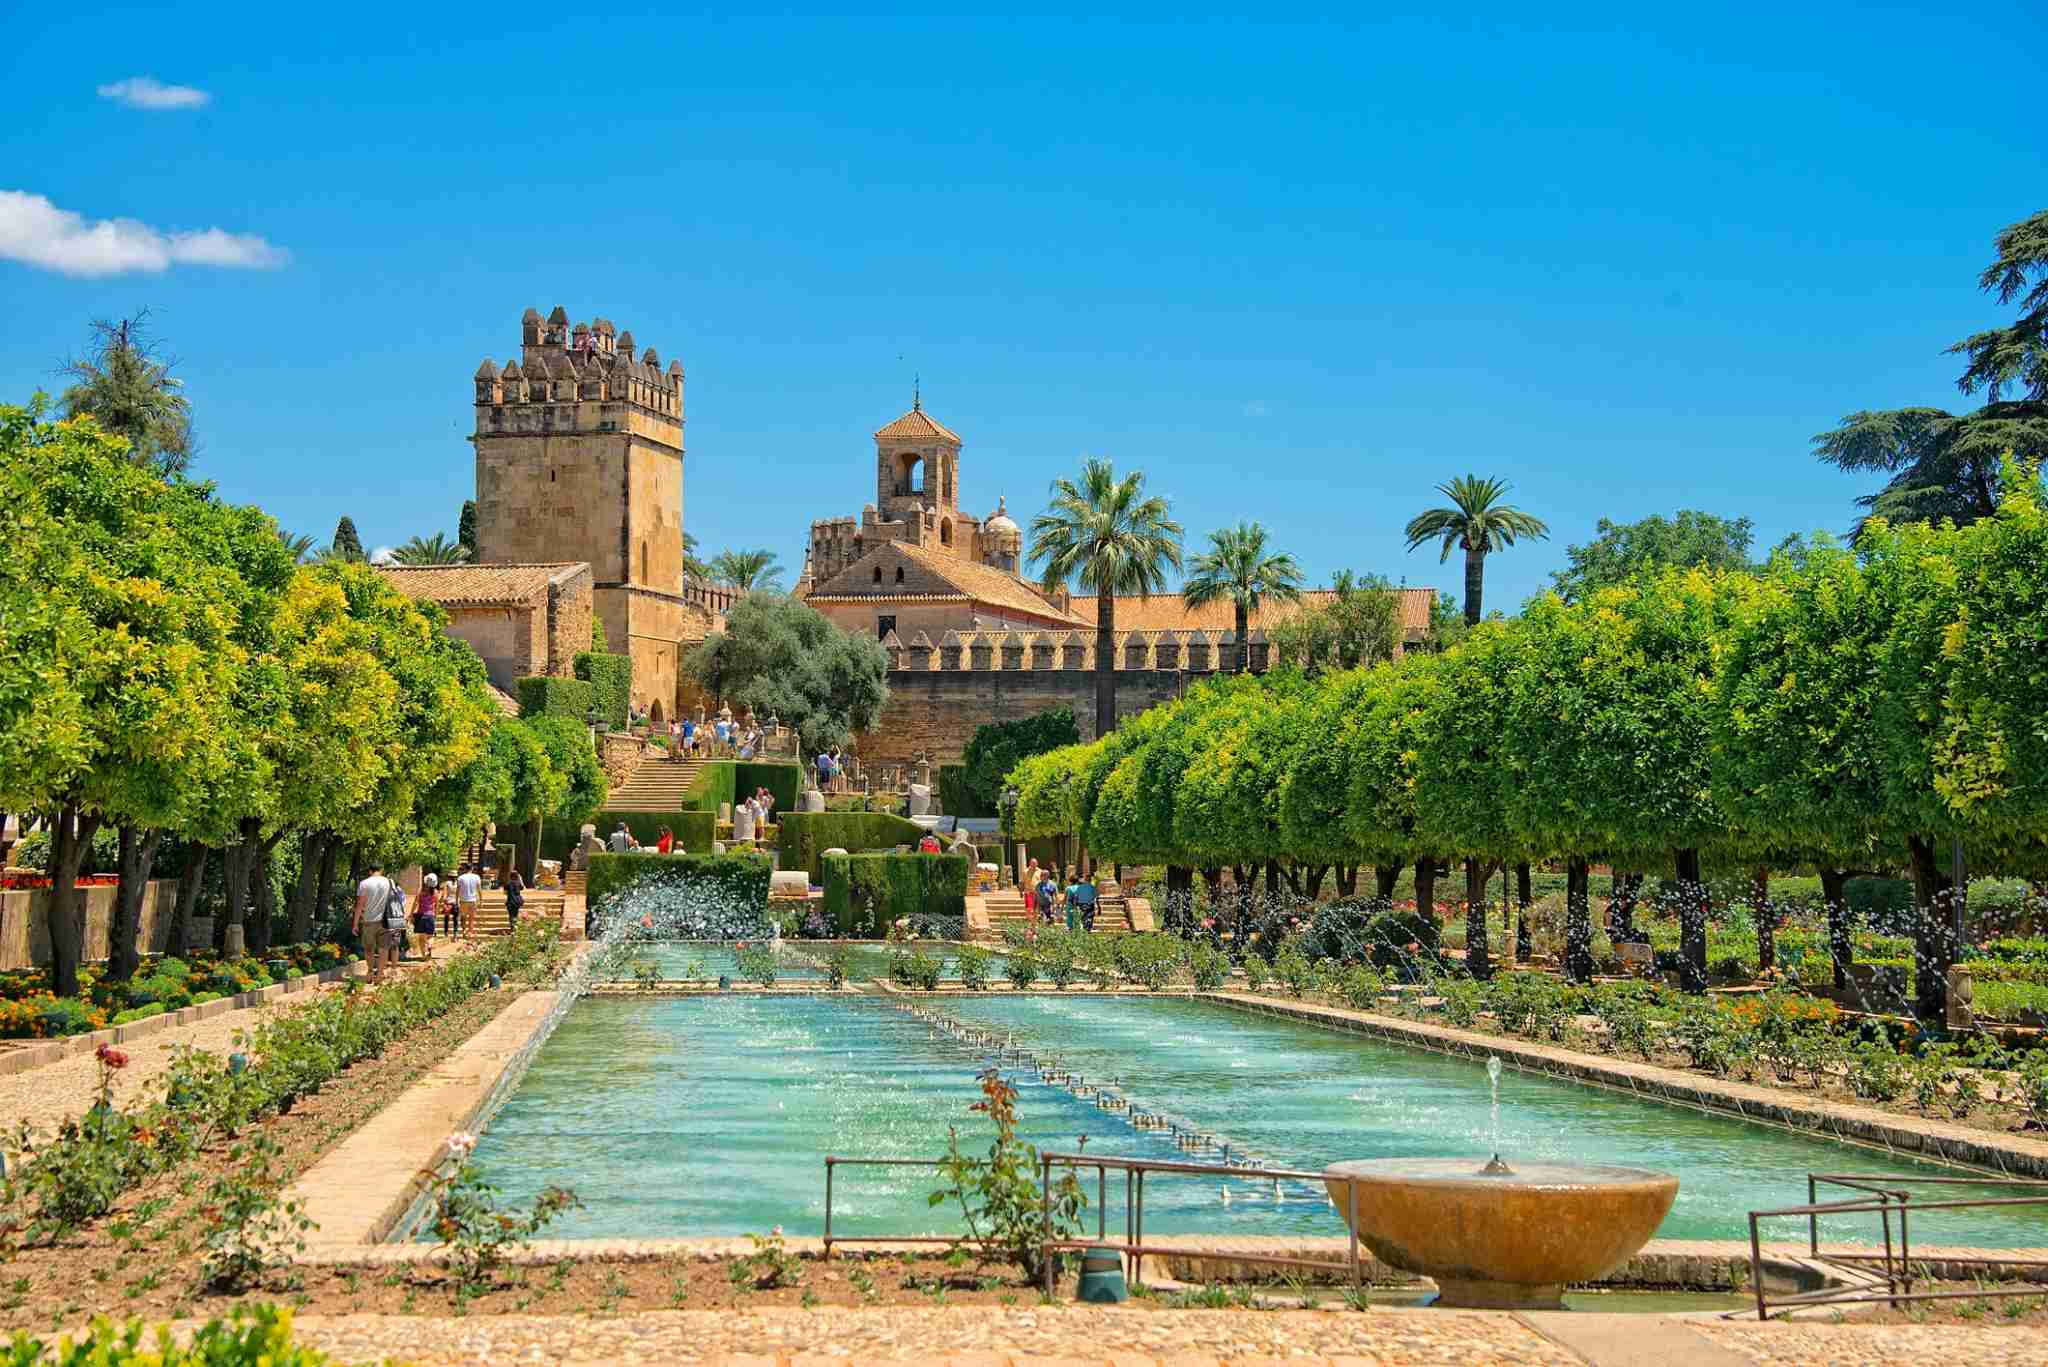 View of Alcázar of Córdoba Spain from the garden.